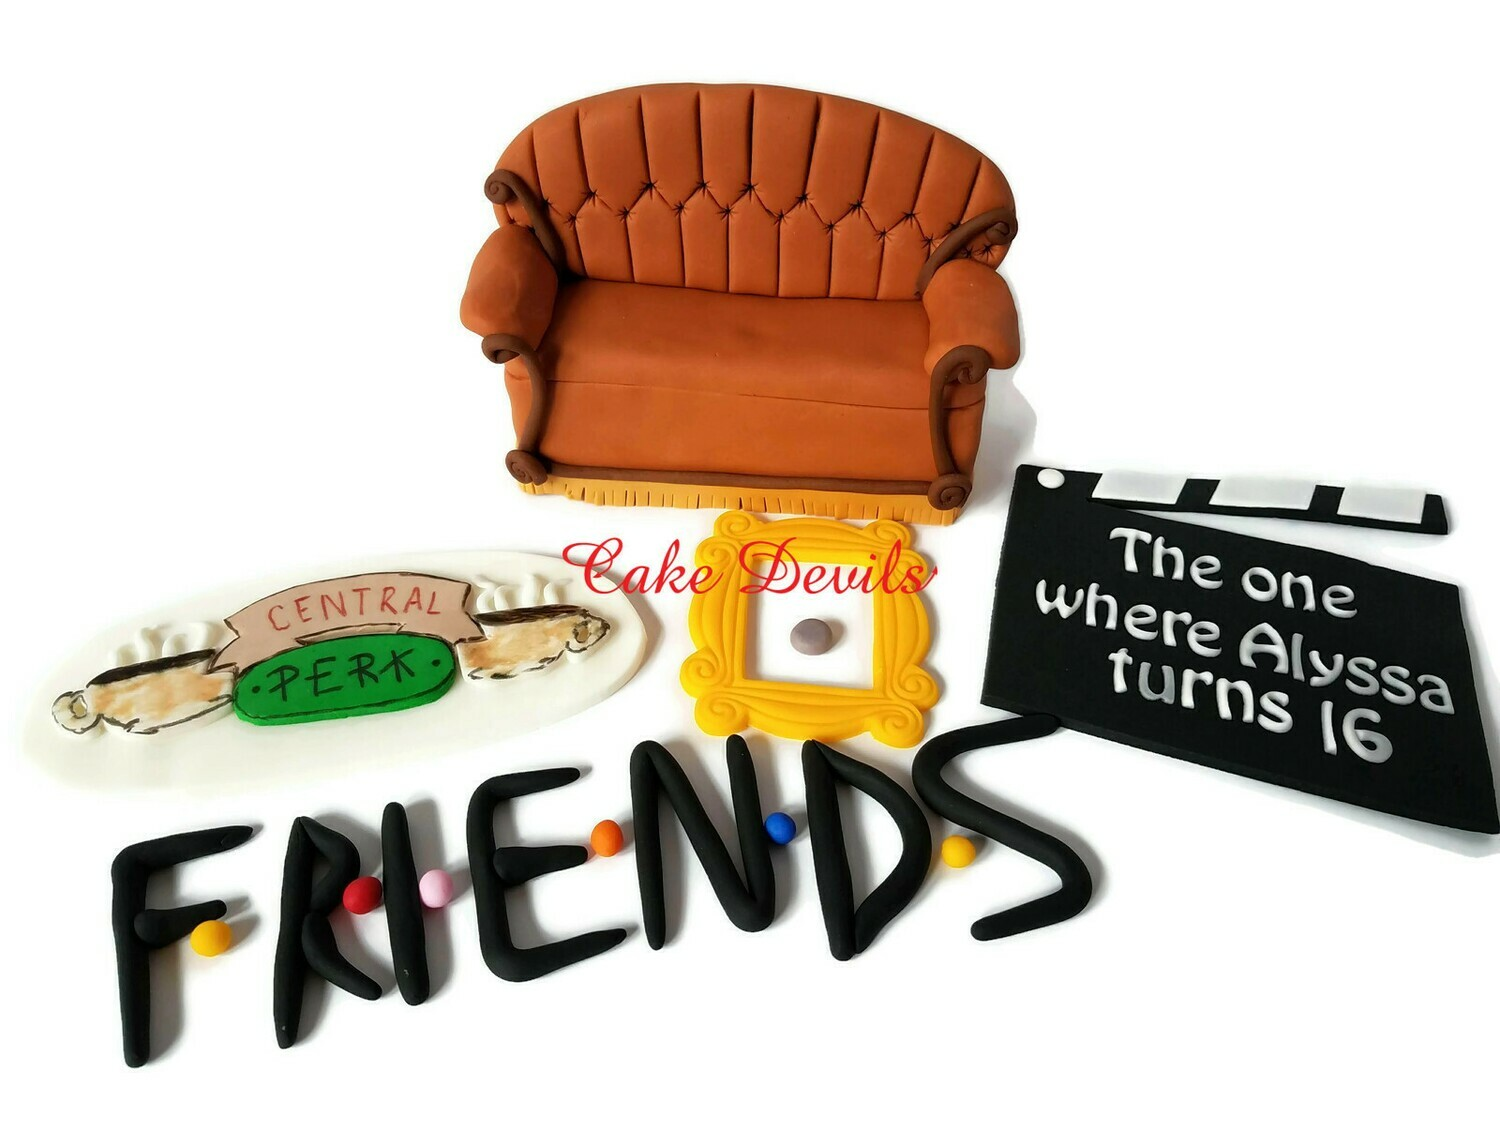 Friends Large Couch and Coffee Cups Cake Topper Kit